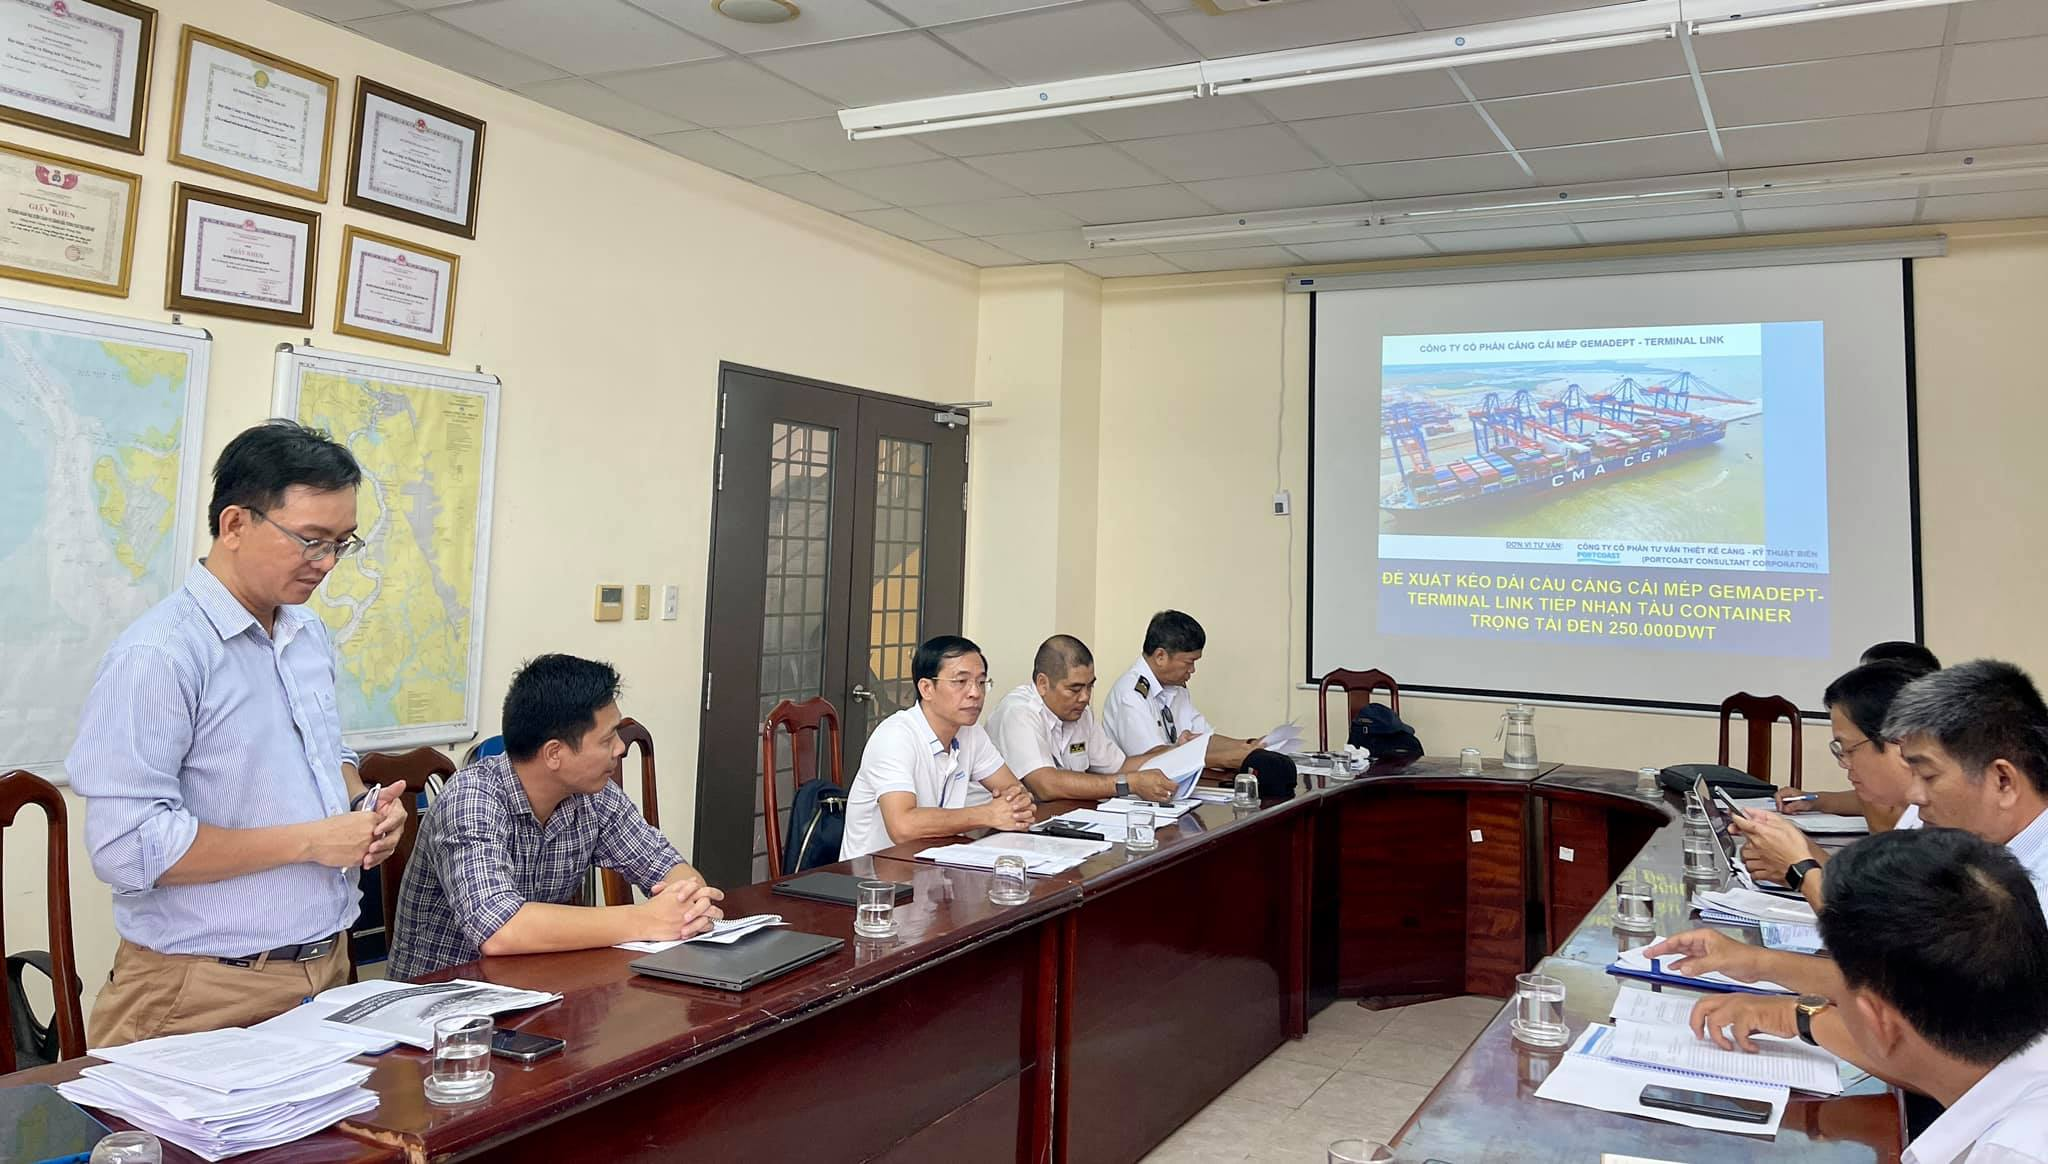 Portcoast has a meeting to discuss about the development of Gemalink port in the future